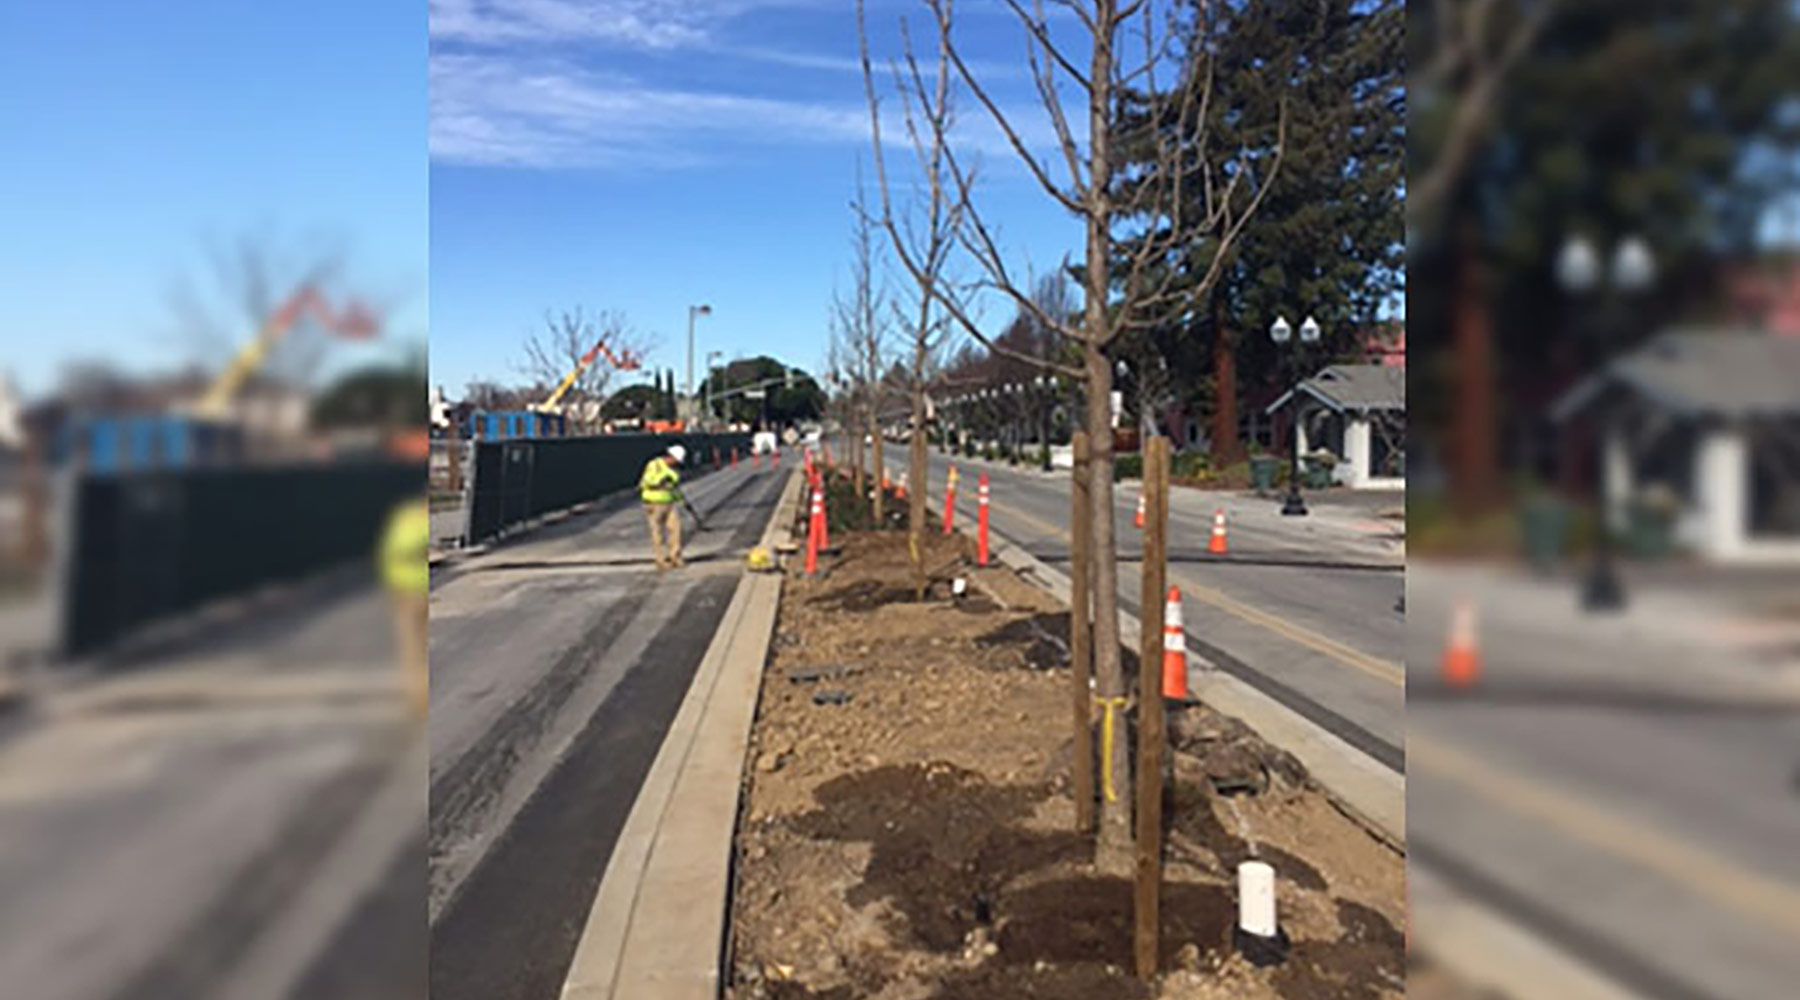 Feb. 2018: Sunnyvale median with trees installed.